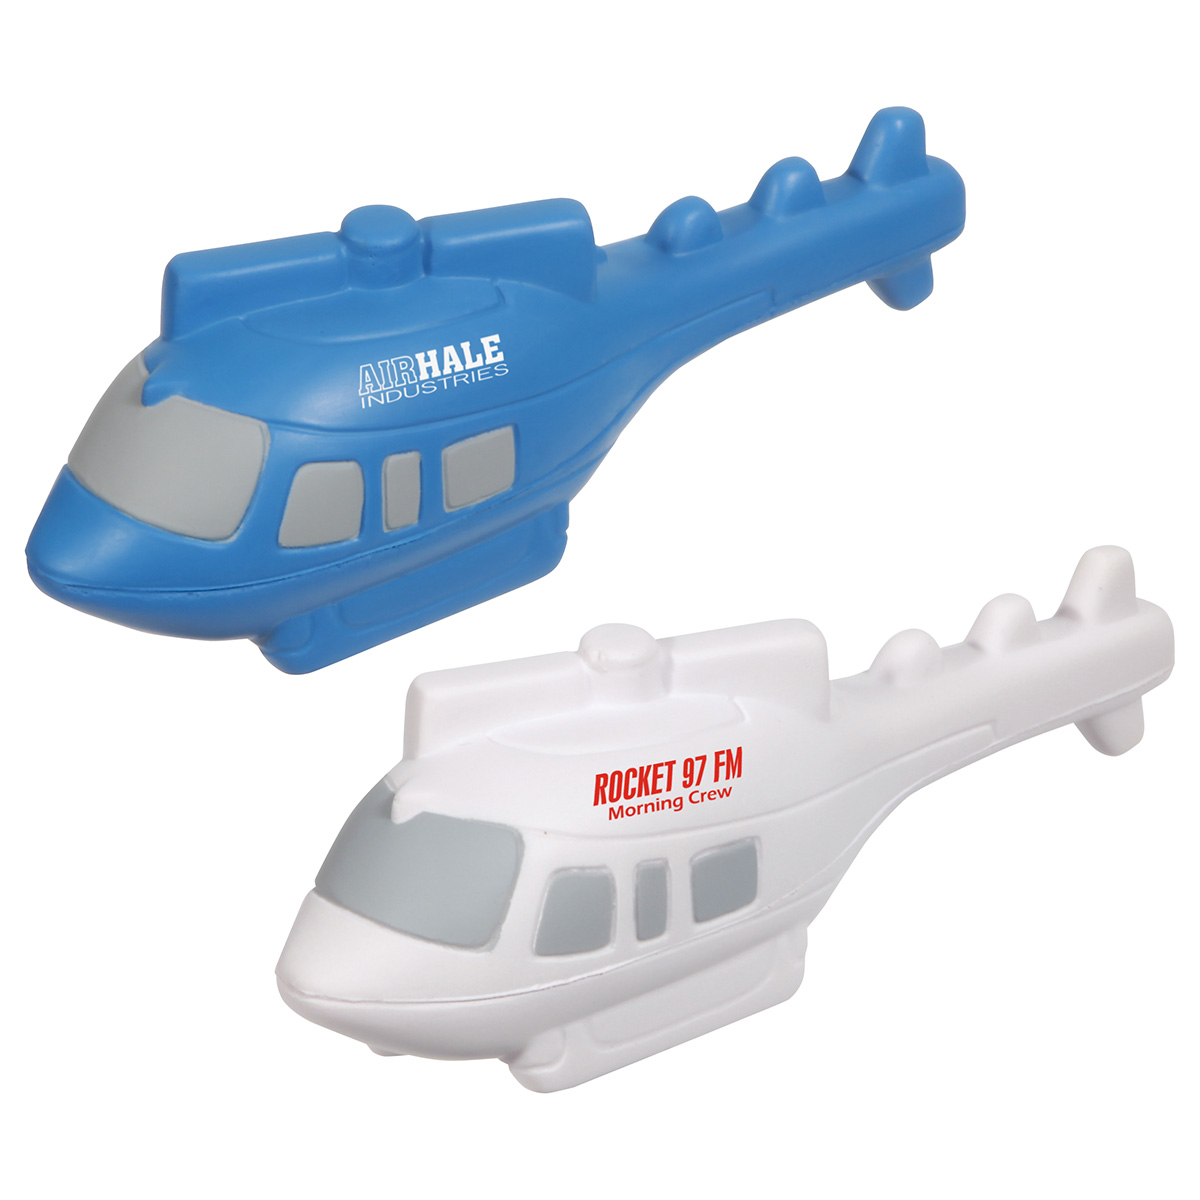 Helicopter Stress Reliever, LAR-HE36 - 1 Colour Imprint